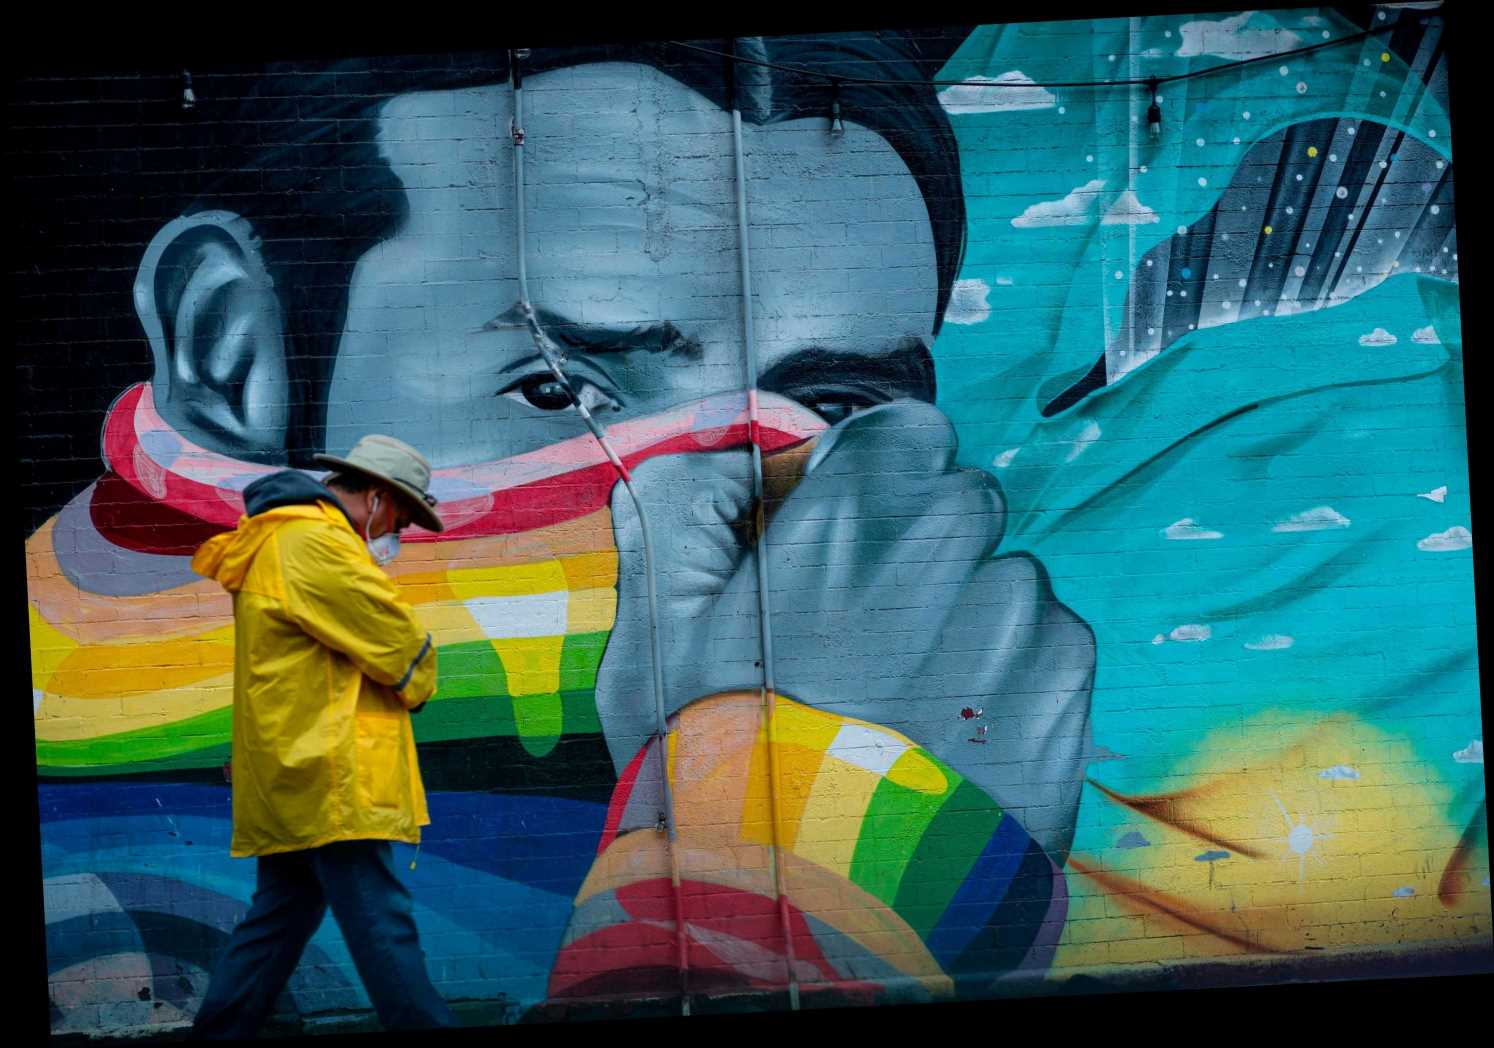 New York's LGBTQ Community Sees COVID-19 And AIDS Parallels, Contrasts